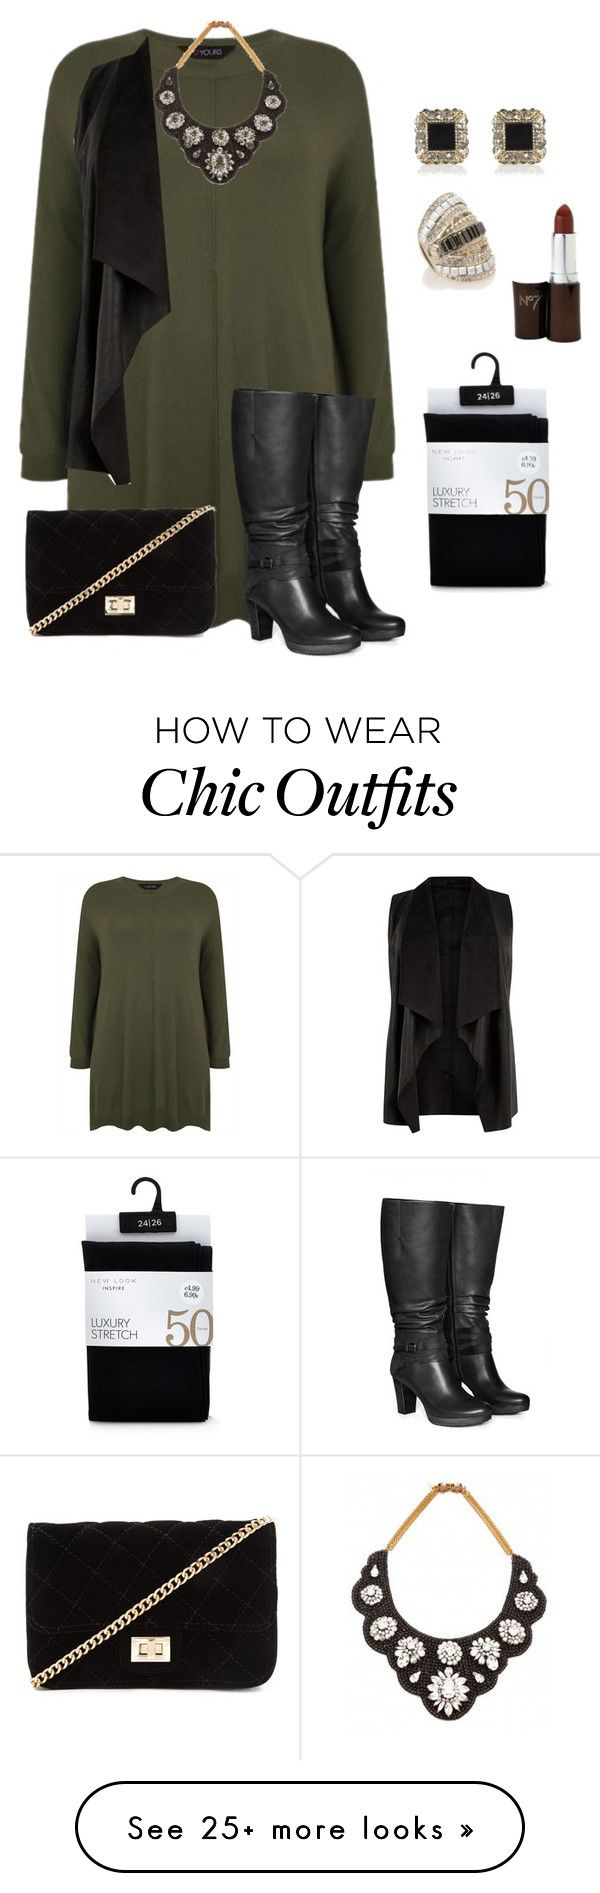 """plus size fall/winter chic and edgy"" by kristie-payne on Polyvore featuring Jilsen Quality Boots, Forever 21, Darya London, River Island and Oasis"